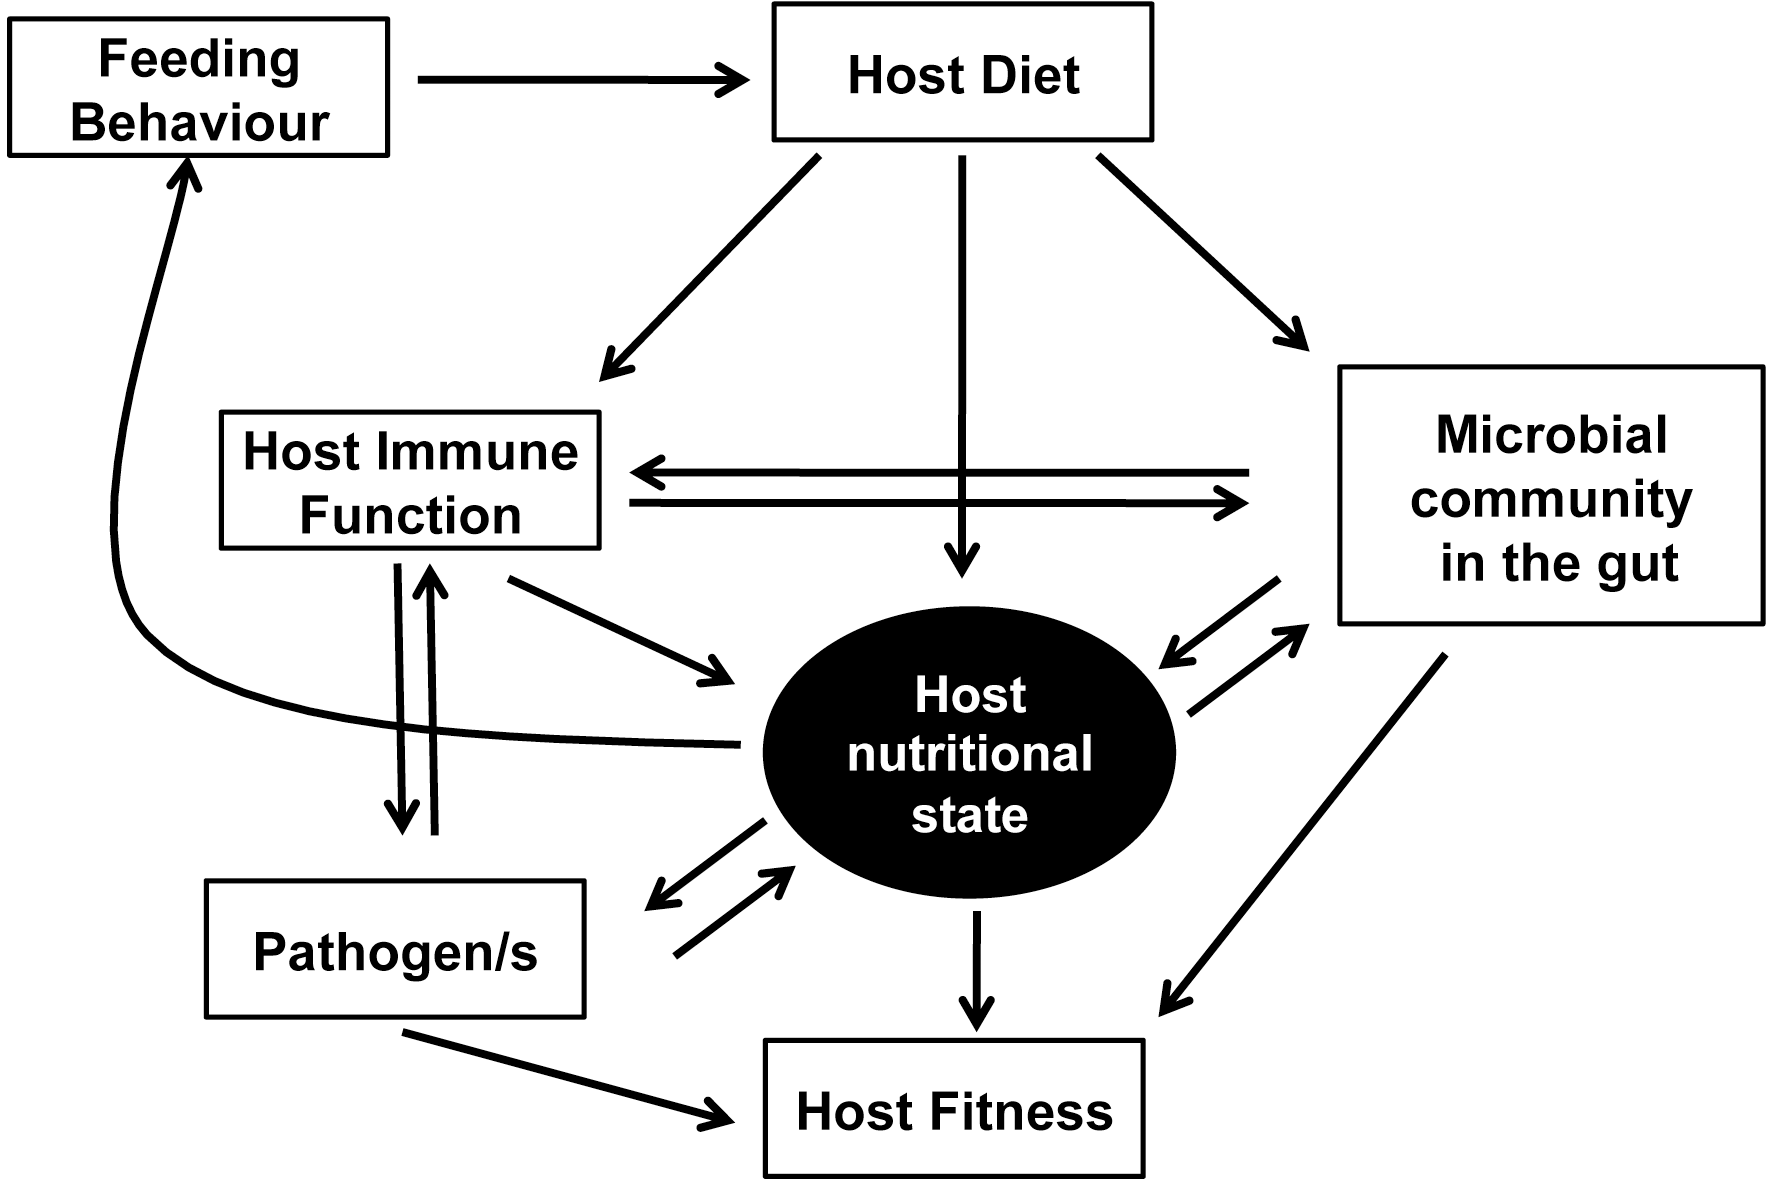 The network of interactions between nutrition and immunity.